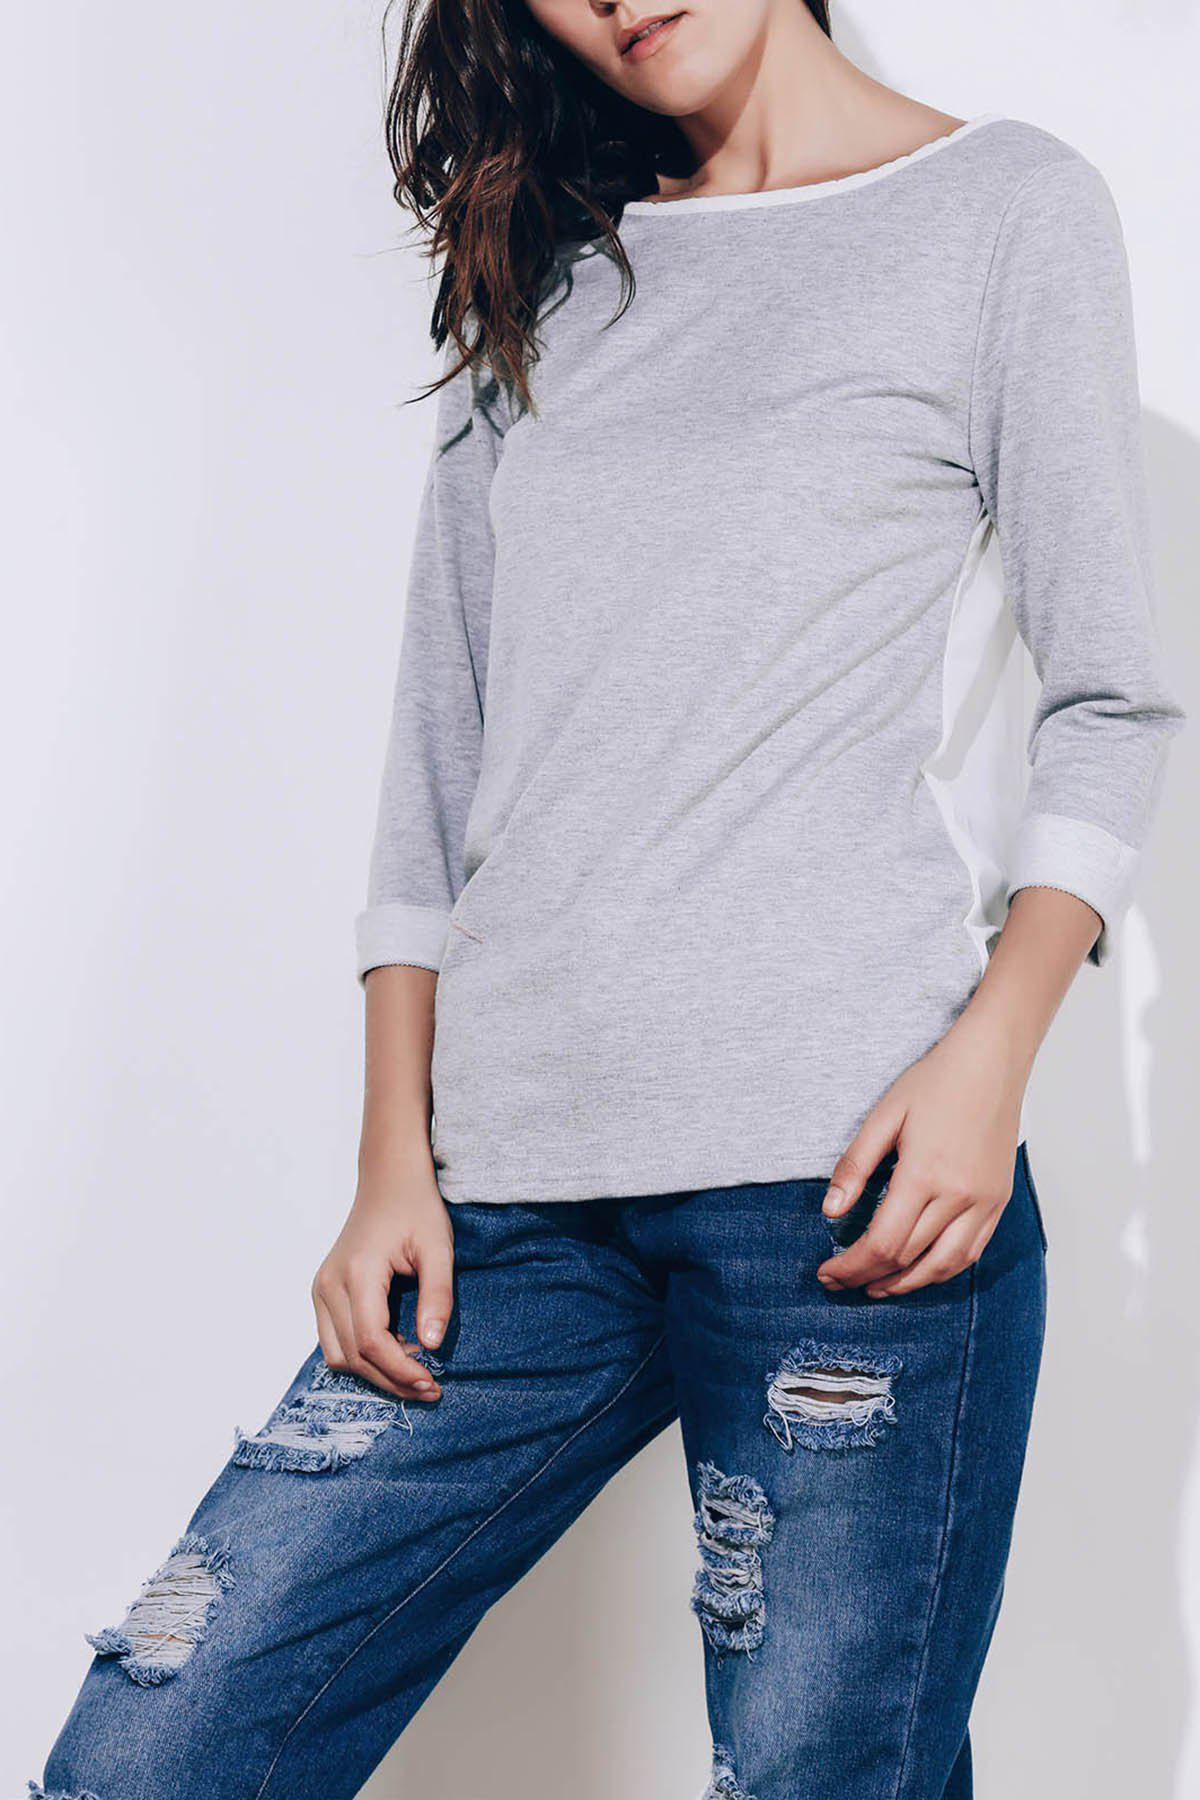 Sweet 3/4 Sleeve Back Bowknot Chiffon Spliced Pullover Sweatshirt For WomenWOMEN<br><br>Size: M; Color: GRAY; Material: Polyester; Shirt Length: Regular; Sleeve Length: Three Quarter; Style: Fashion; Pattern Style: Others; Weight: 0.199kg; Package Contents: 1 x Sweatshirt;